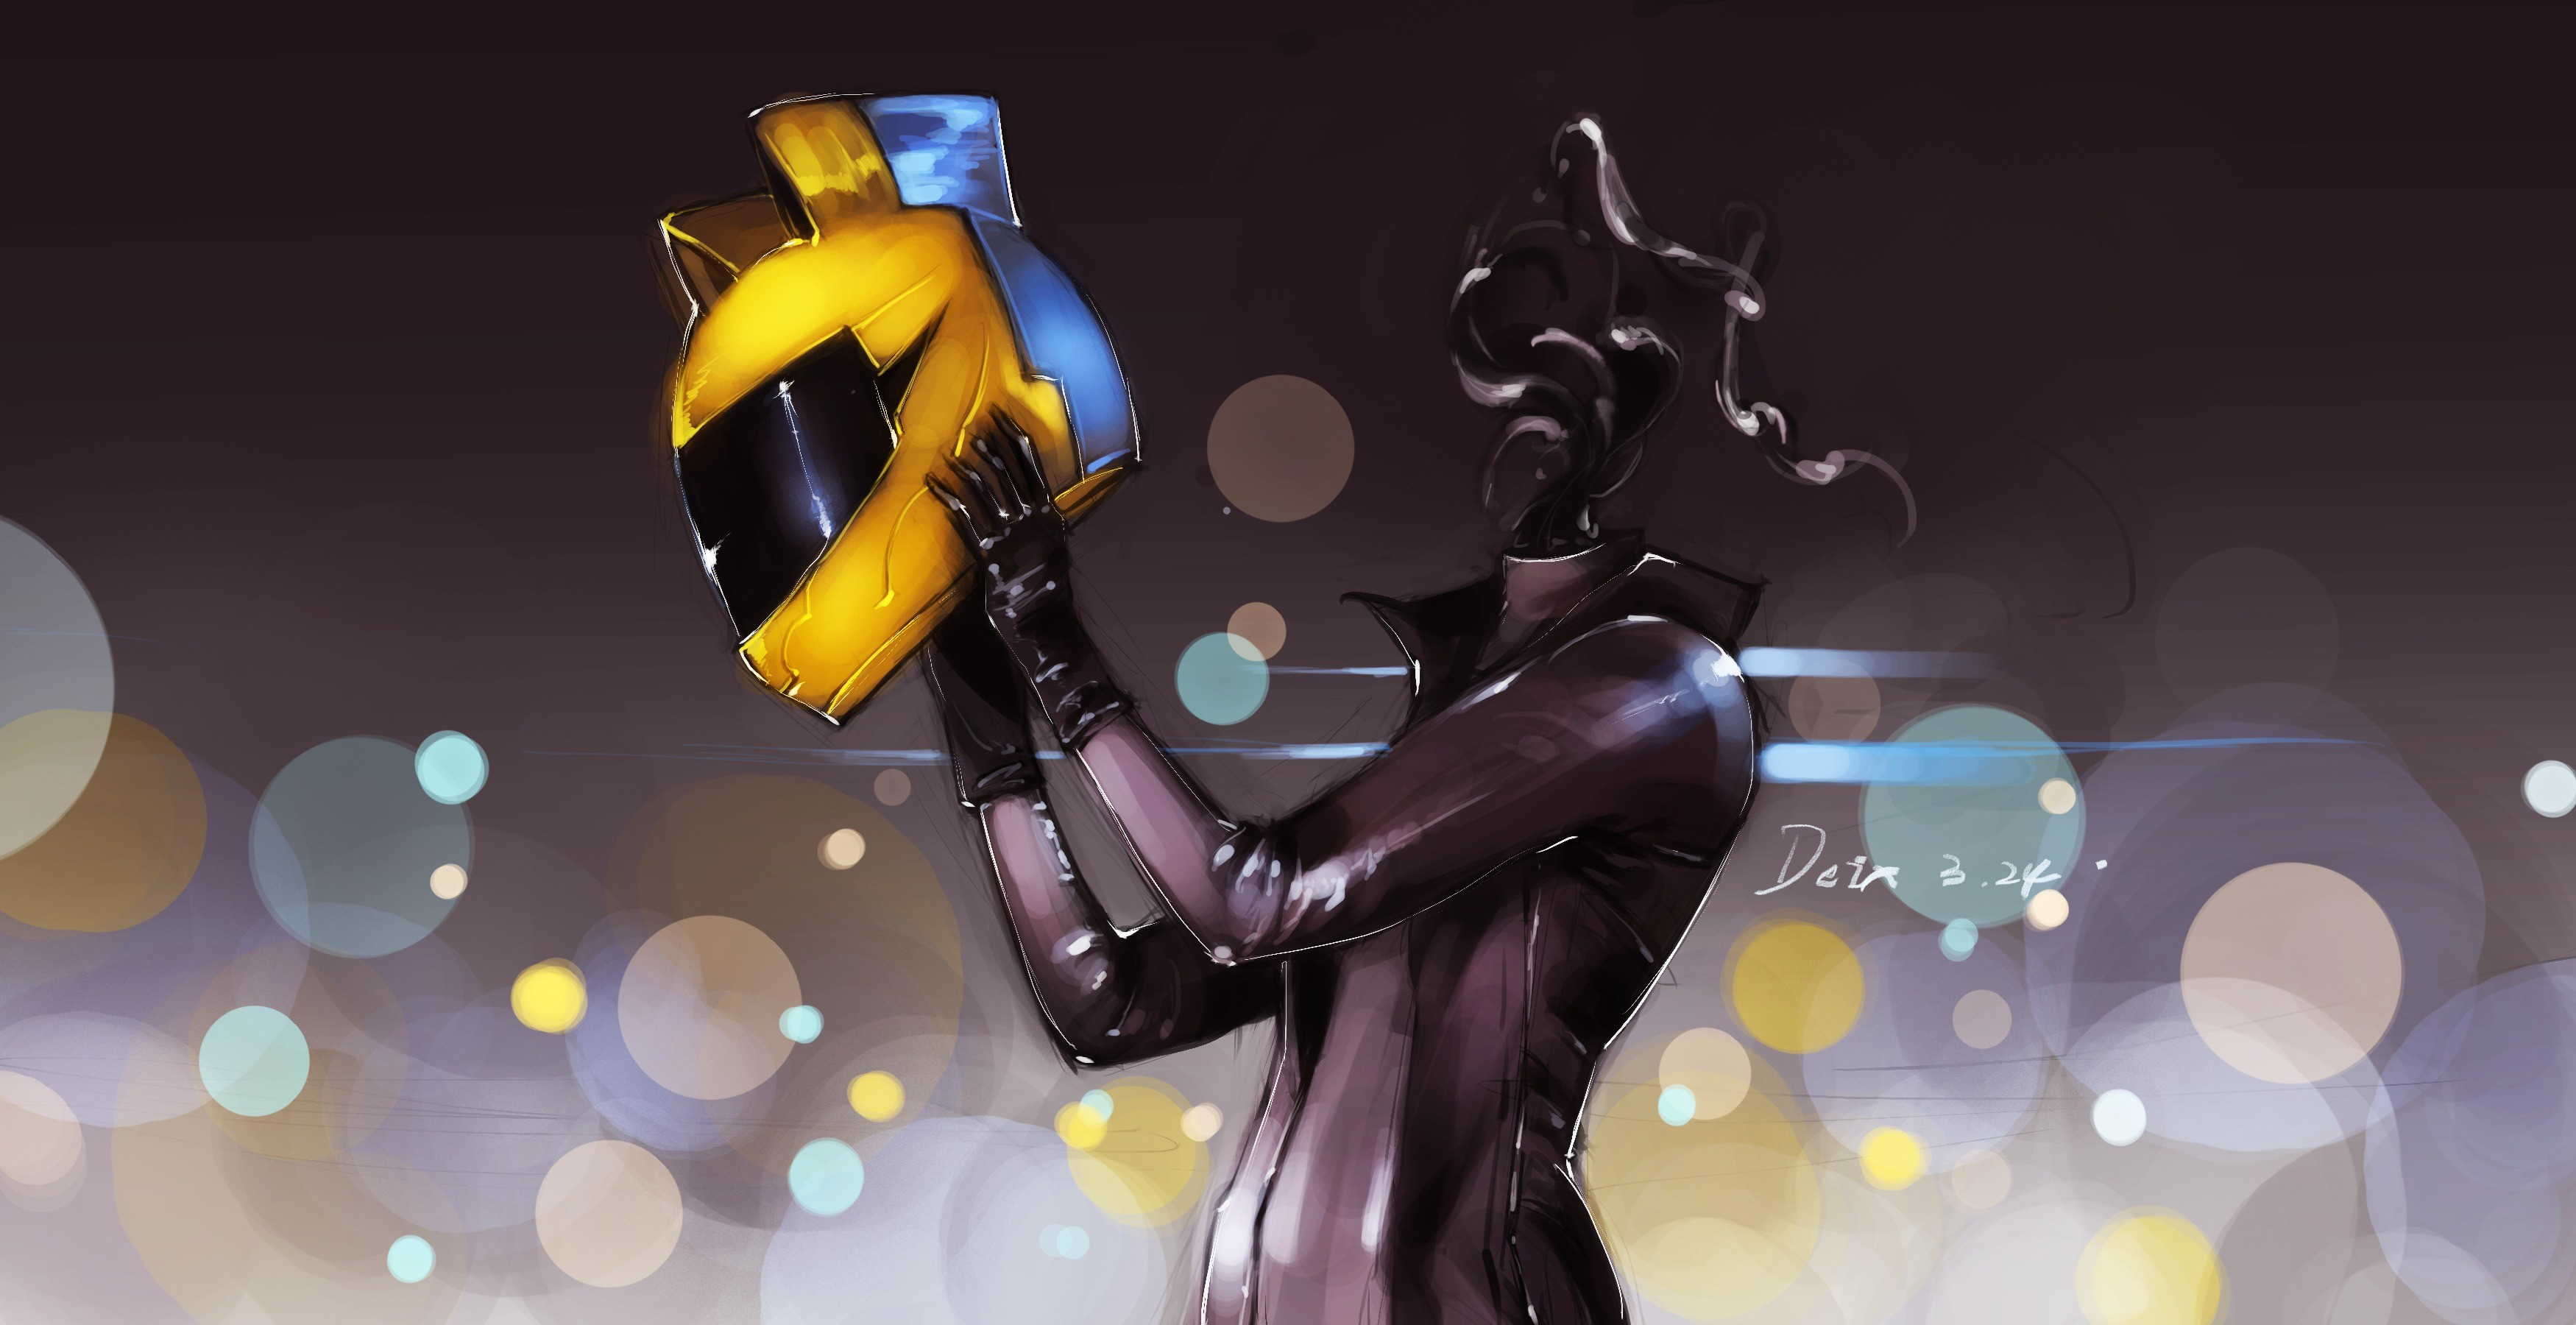 3500x1800  Wallpaper celty sturluson, durarara, anime